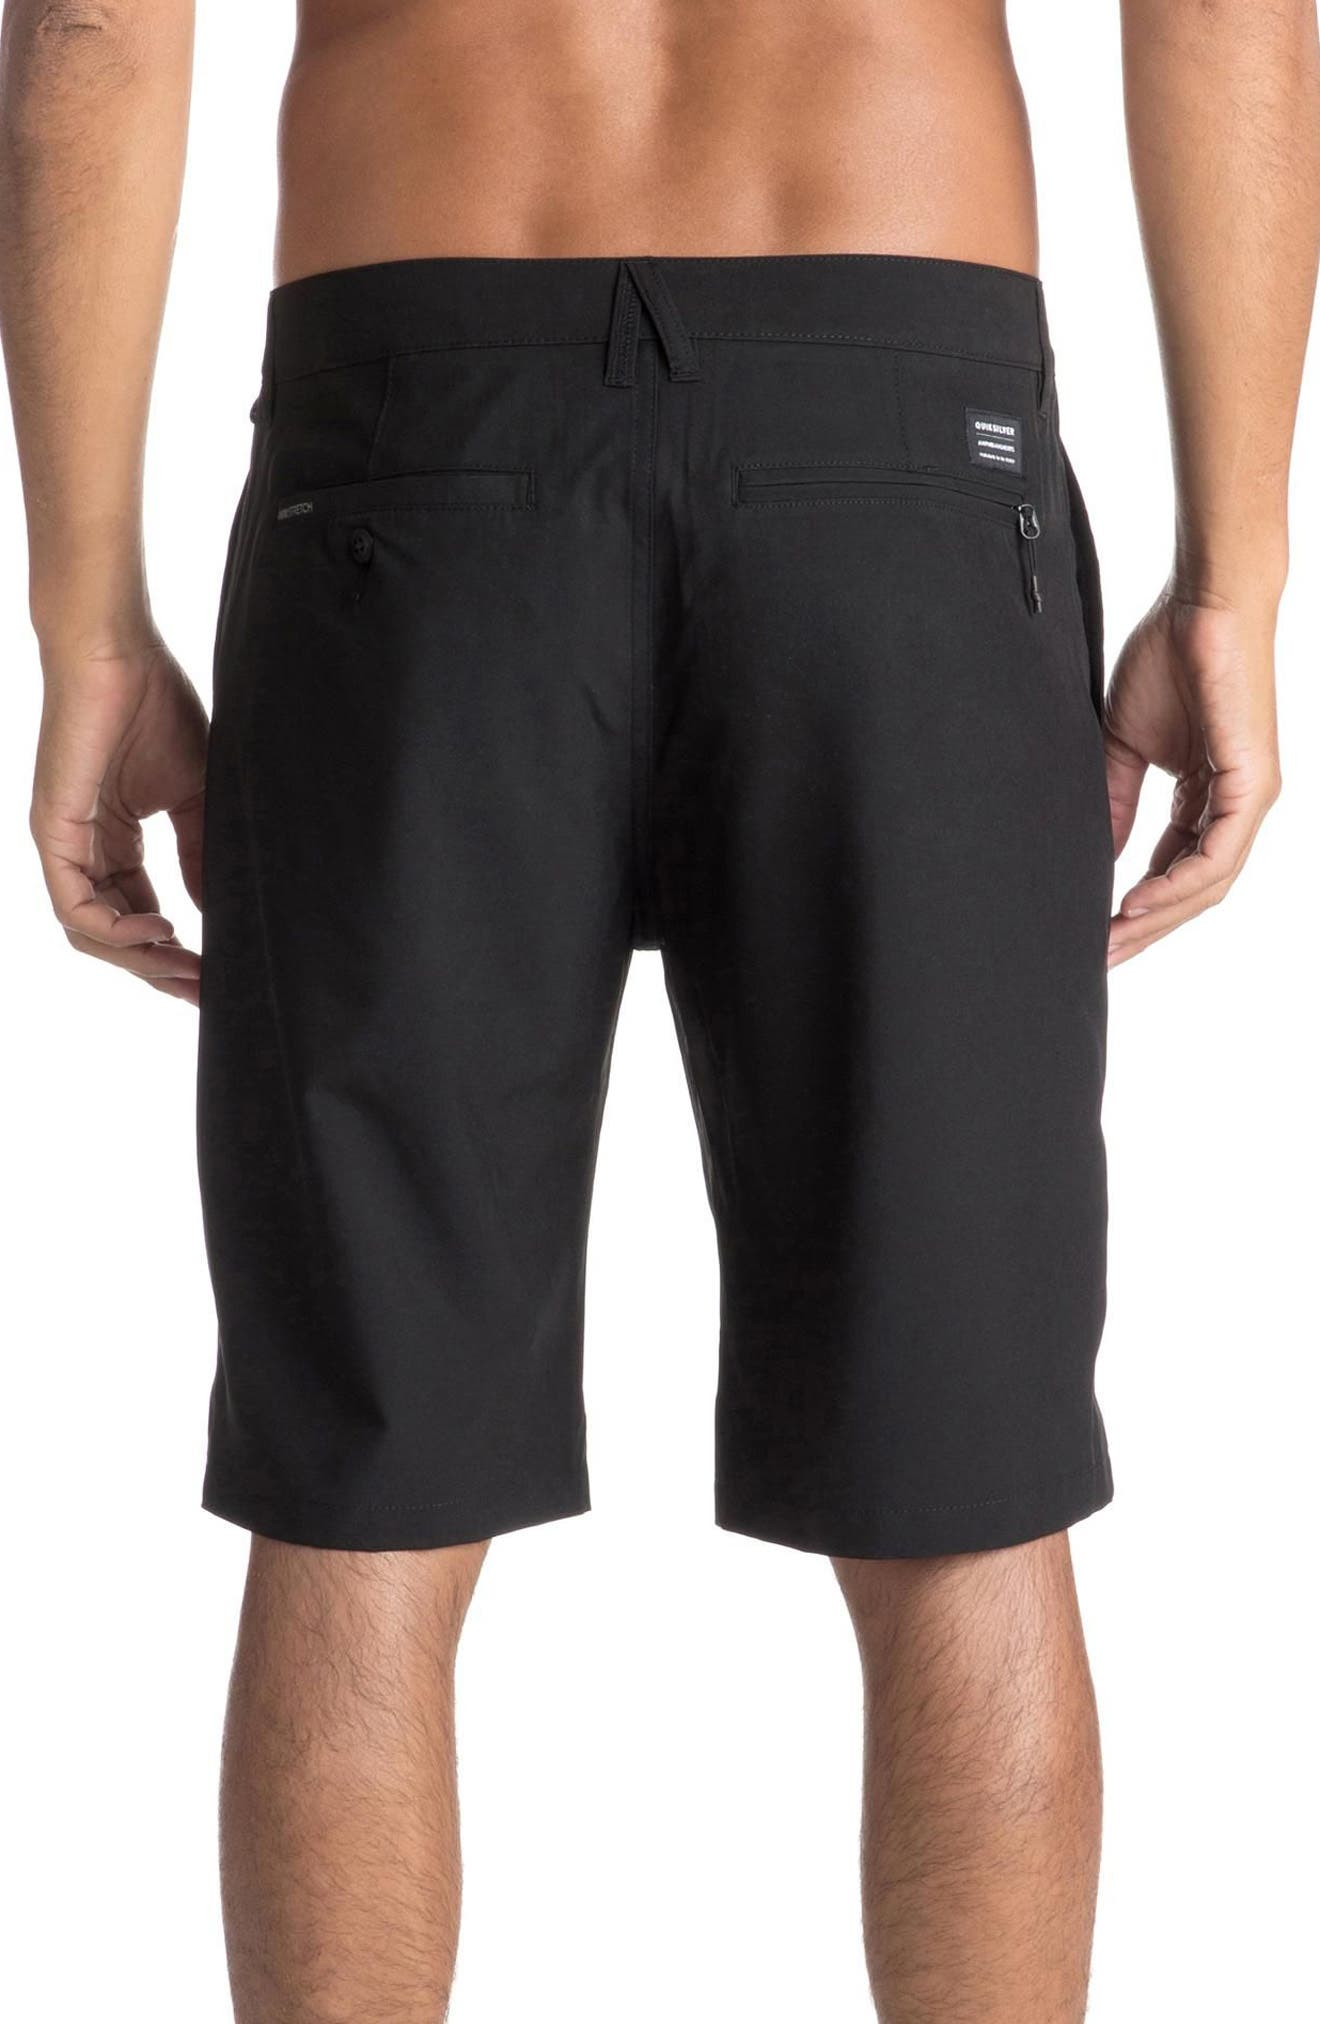 Union Amphibian Shorts,                             Alternate thumbnail 2, color,                             002